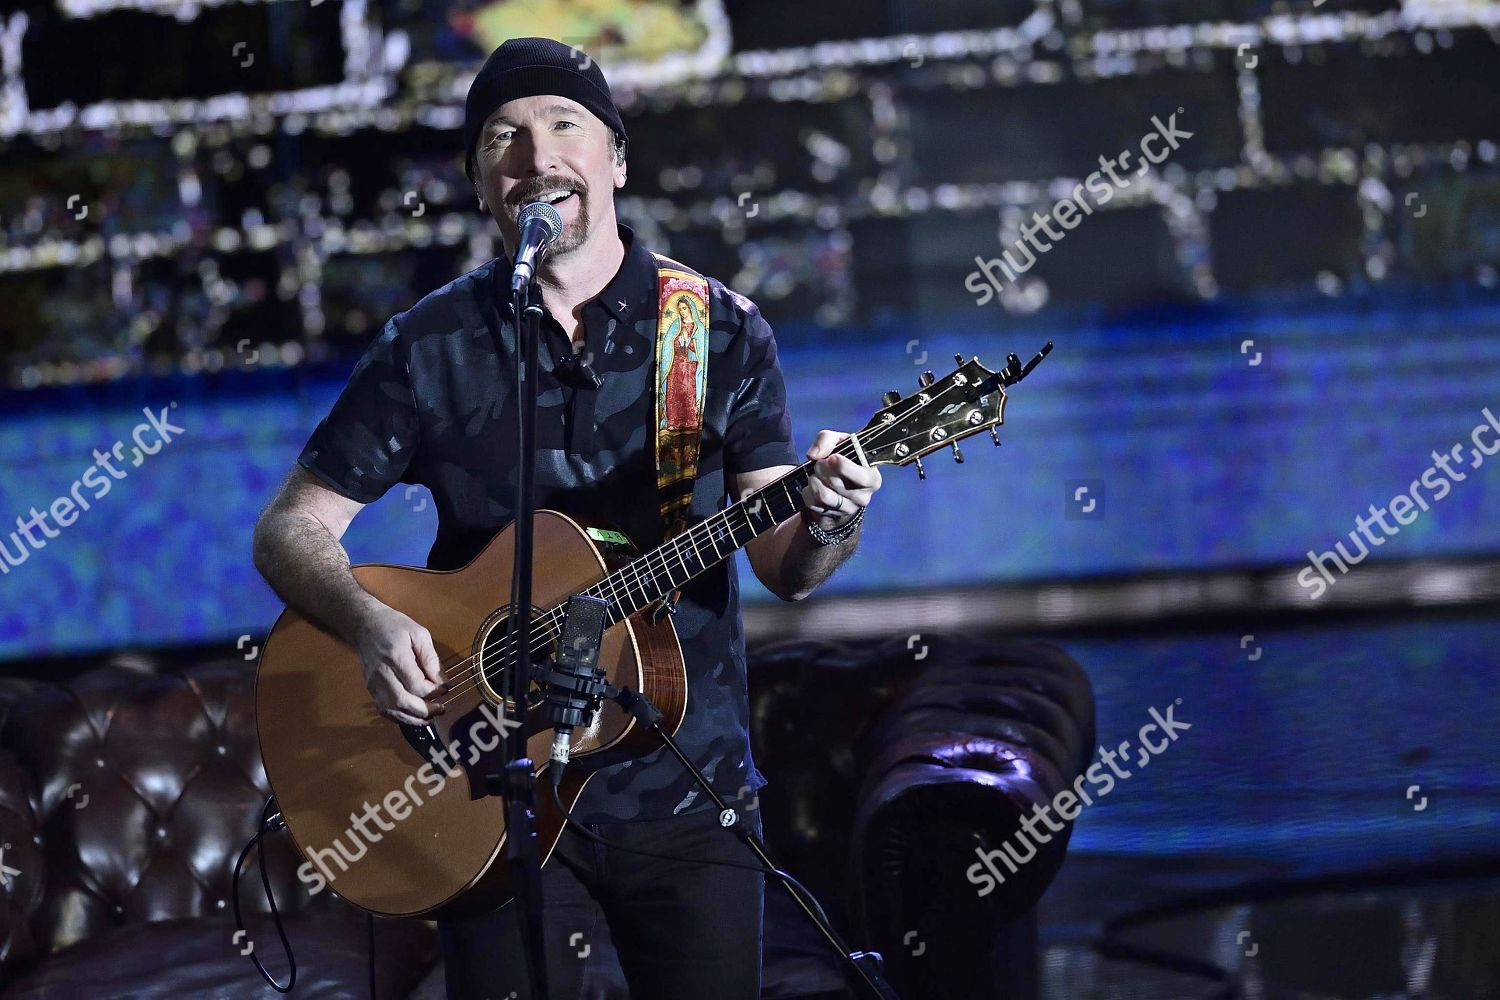 Edge lead guitarist Irish rock band U2 Editorial Stock Photo - Stock